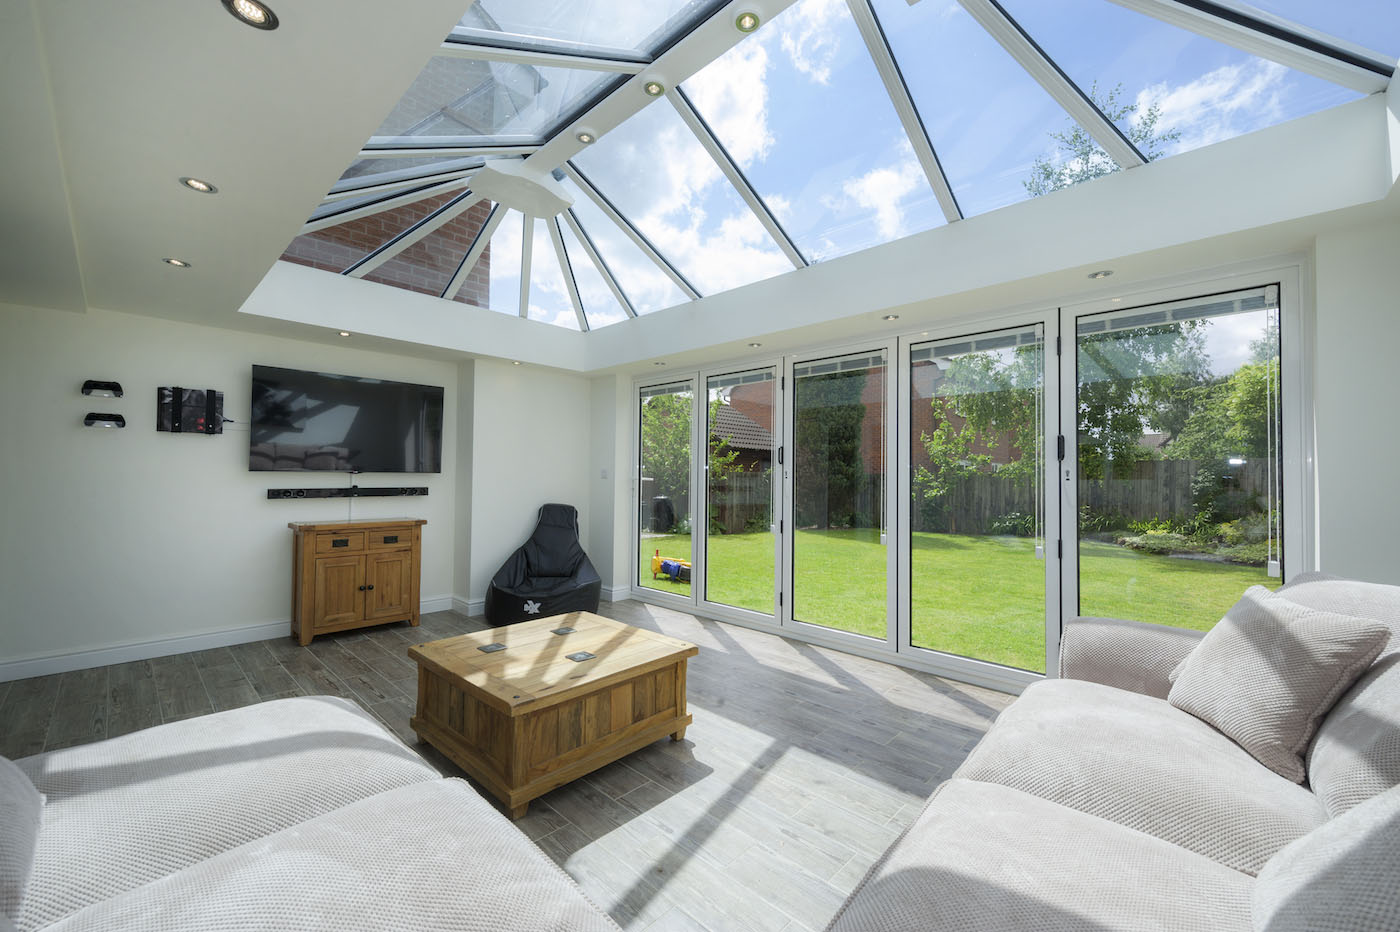 T&J Conservatories - Home Improvements - Manchester, North West, United Kingdom